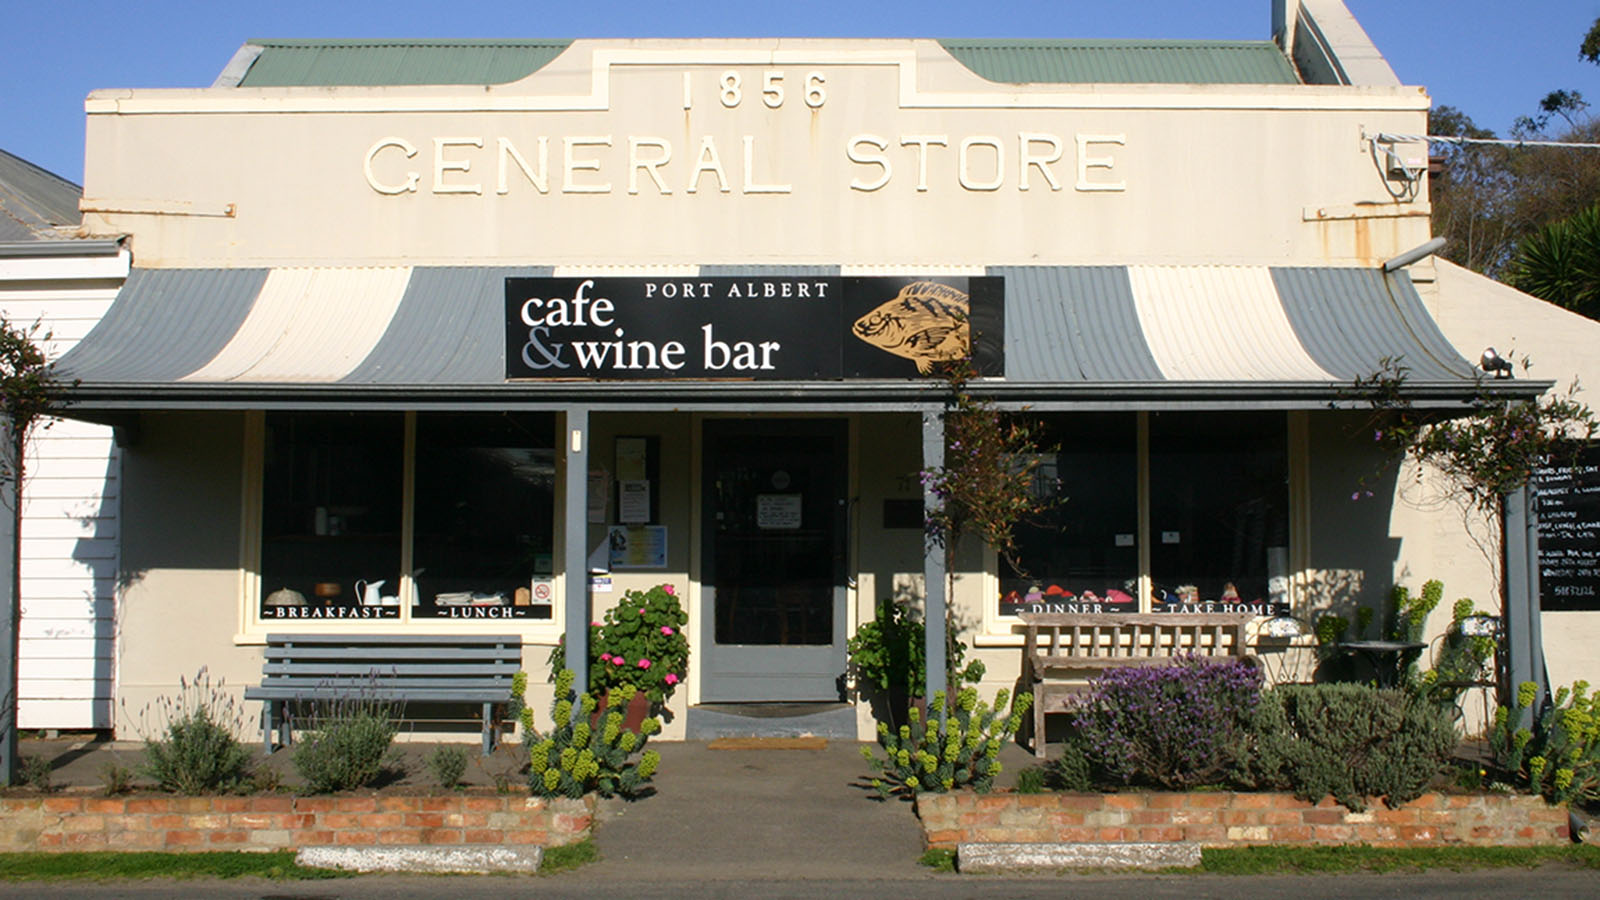 Port Albert Cafe and Wine Bar, Gippsland, Victoria, Australia